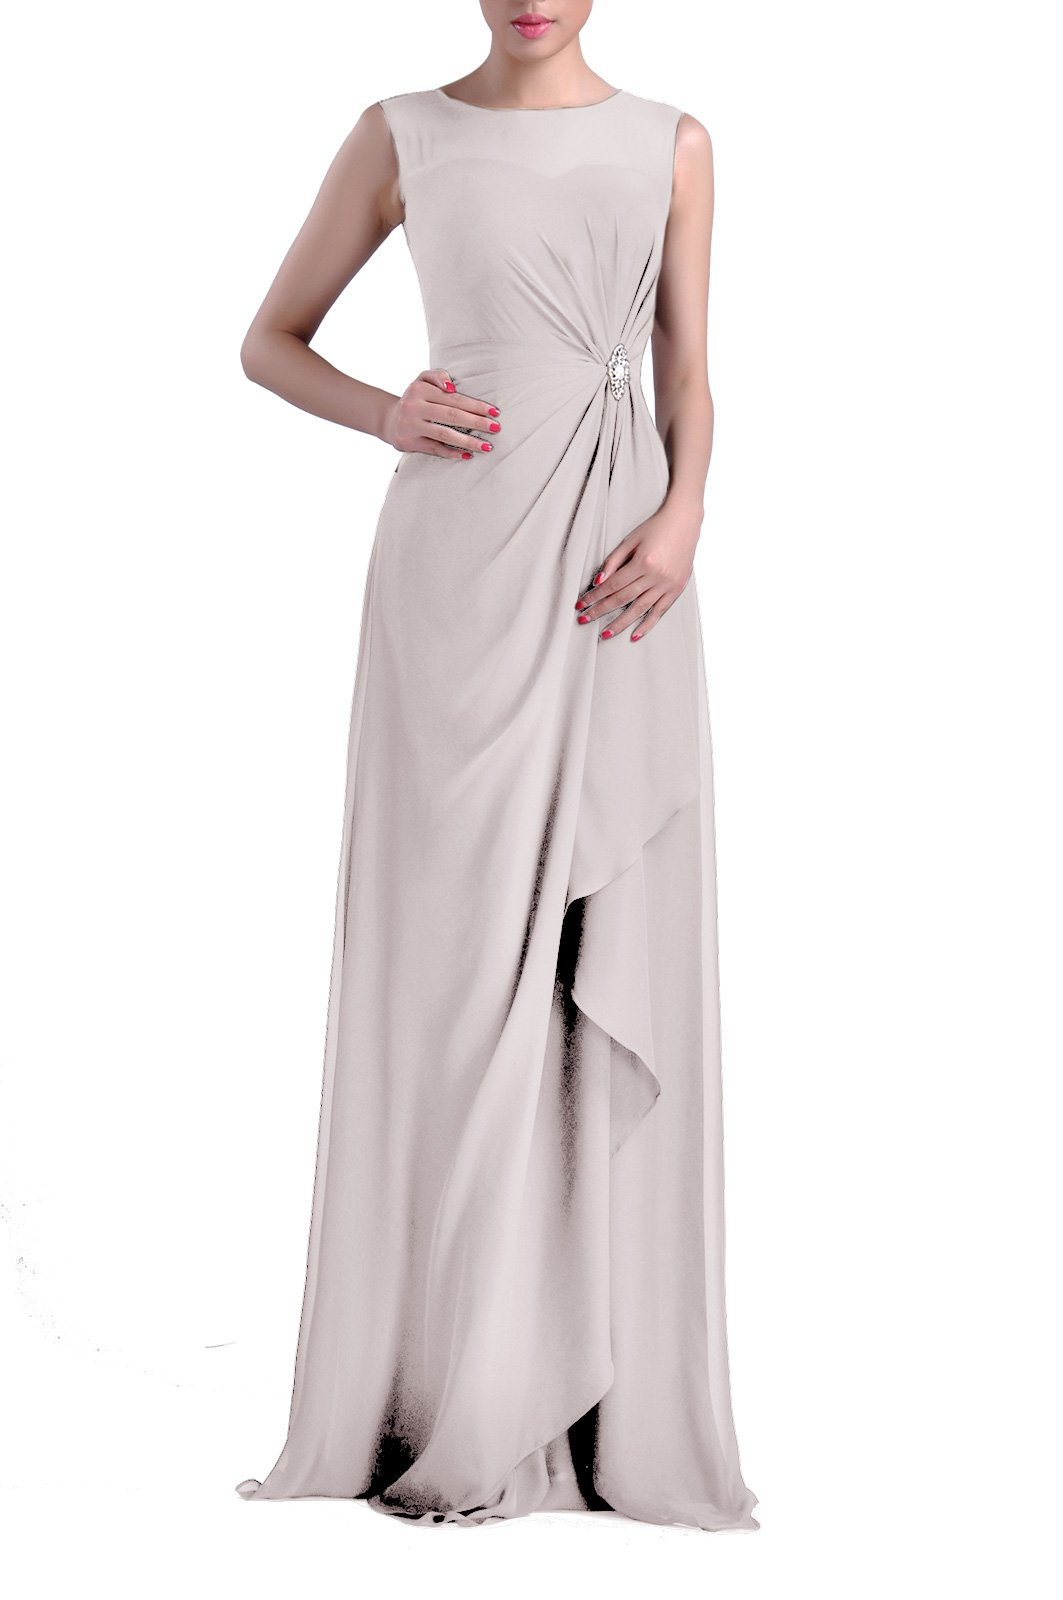 Formal Bridesmaid Dress Chiffon Special Occasion Long Mother Of The Bride Groom Dress, Color Silver,16